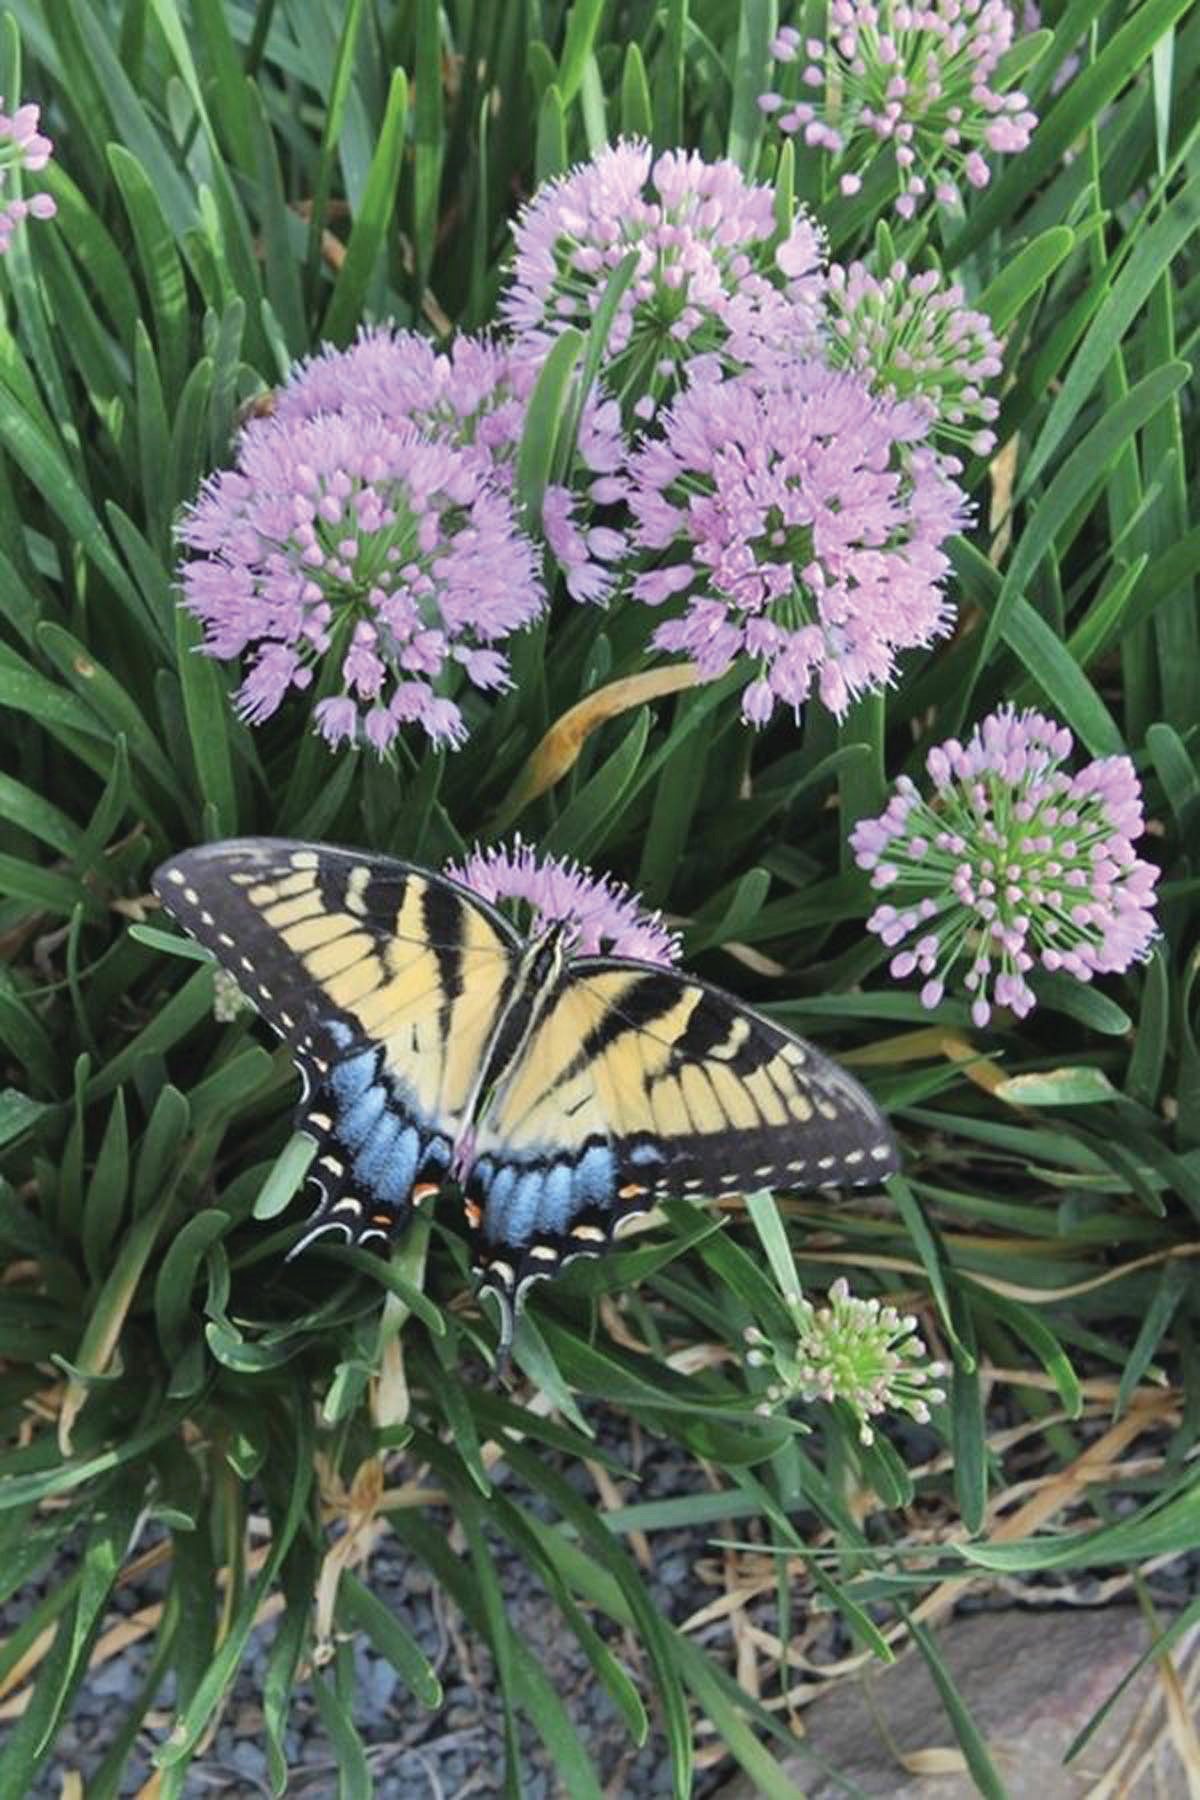 PHOTOS PROVIDEDOnion-loving butterflies will flock to your garden when you plant the 2018 Perennial Plant of the Year, the Millenium Flowering Onion. This plant features a wide clump of narrow, glossy green, deer-resistant leaves which is topped for more than a month in late summer with 2-inch rosy-purple flower heads.